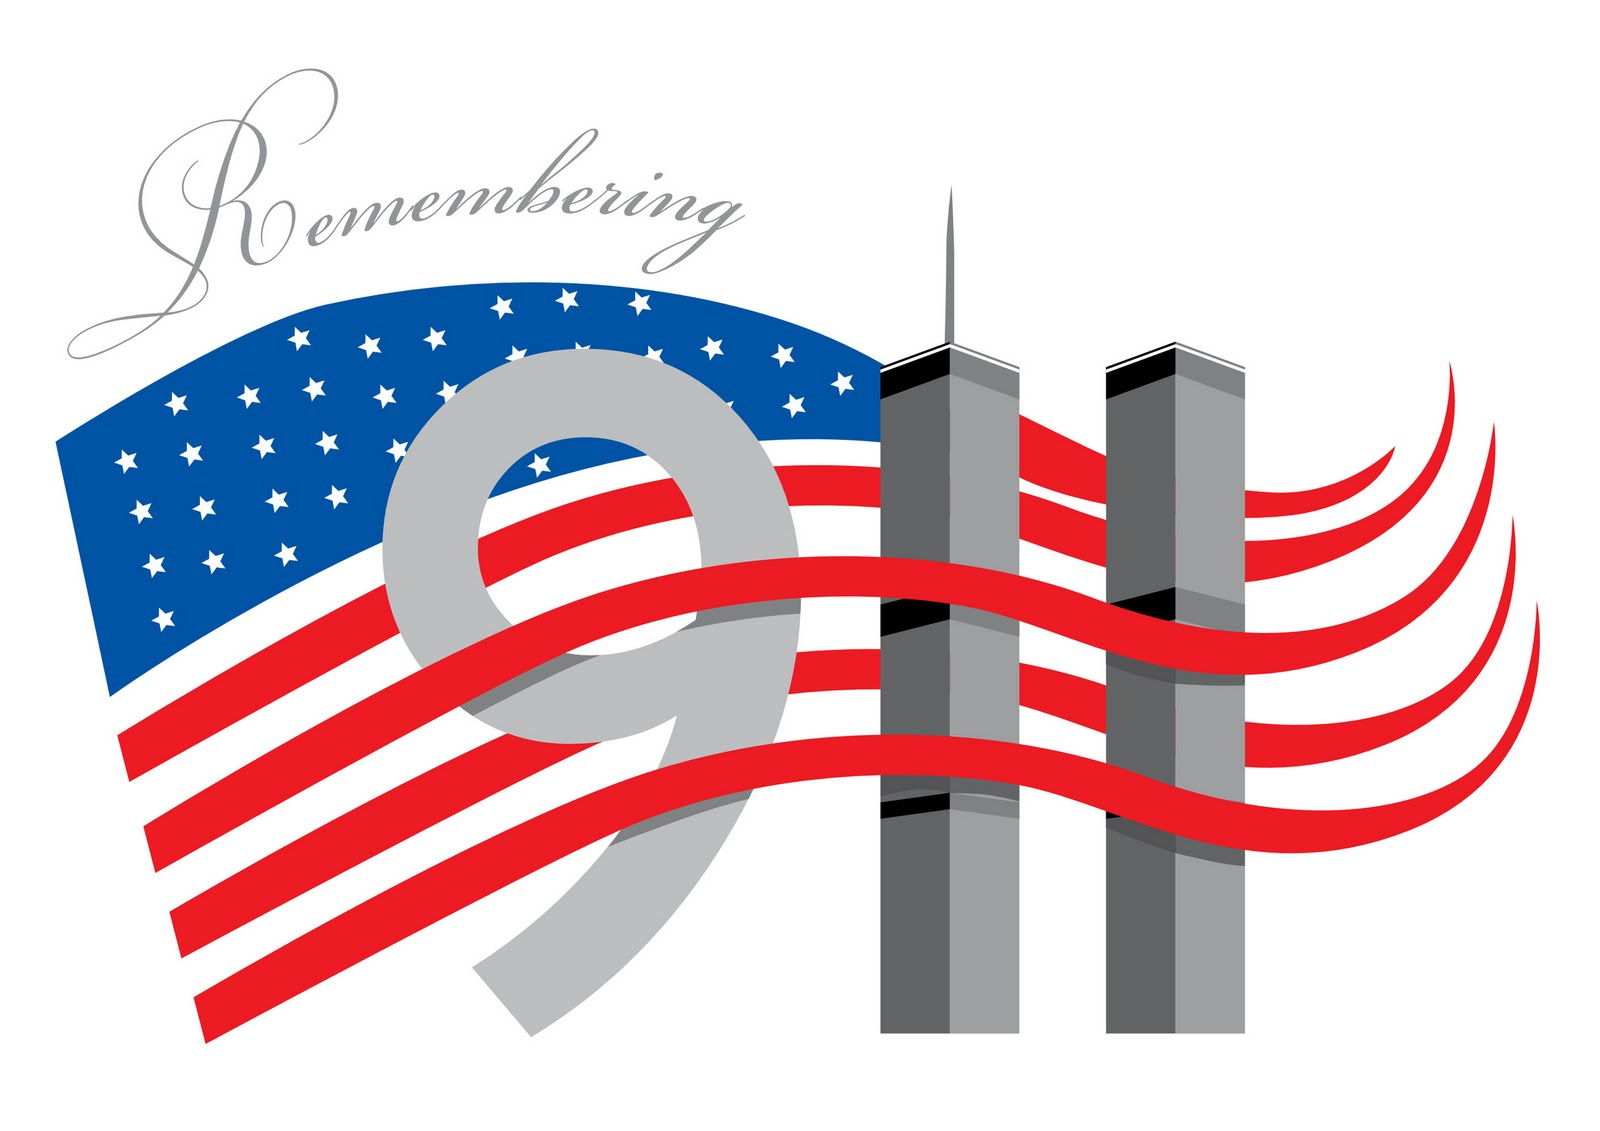 Remember September 11 Clipart.